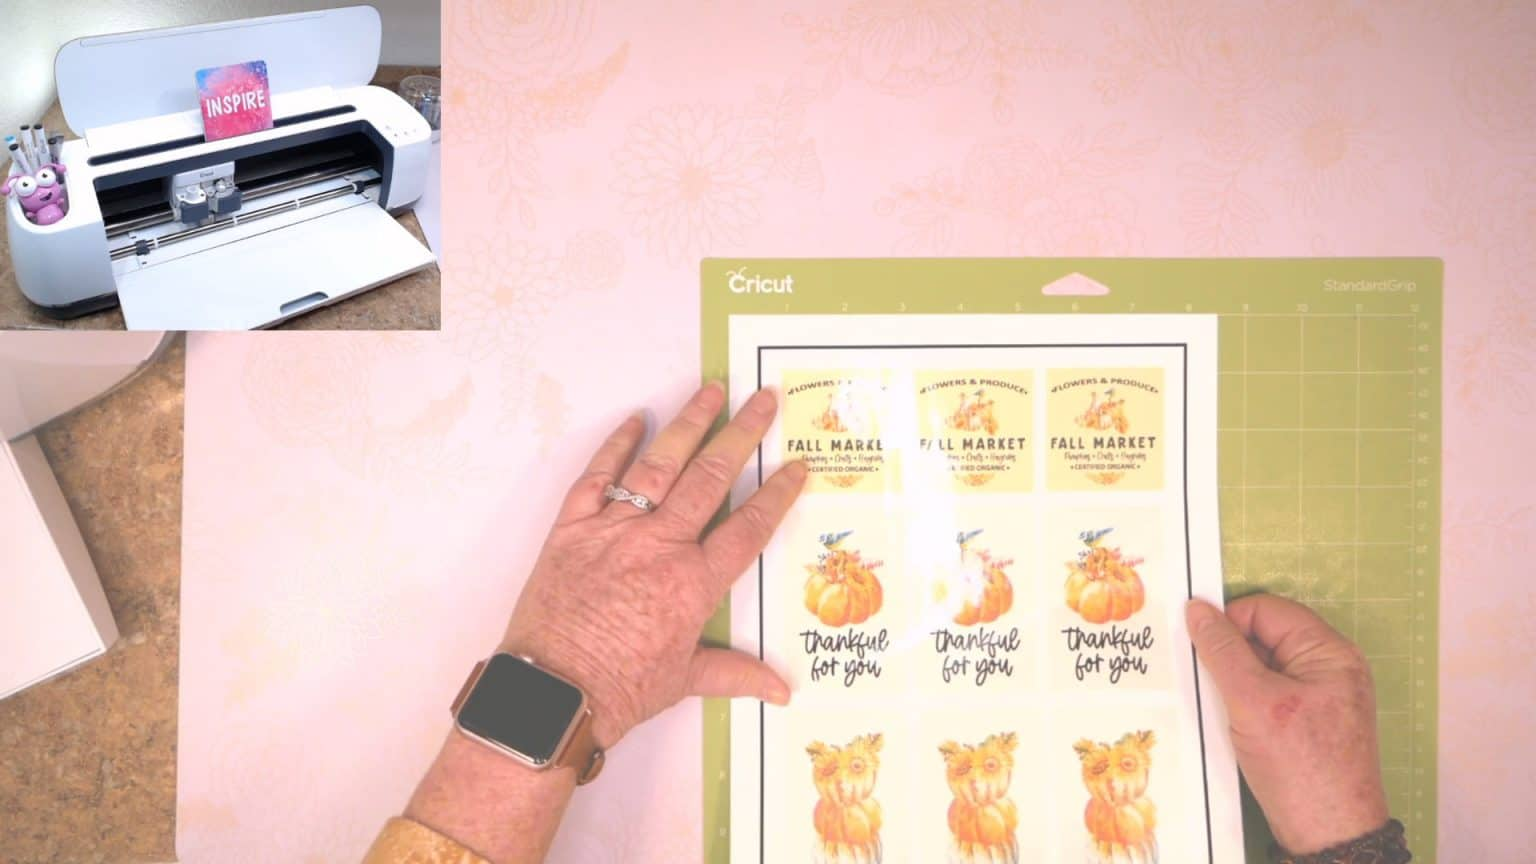 now place the laminated sticker sheet onto your Cricut mat to cut out the stickers